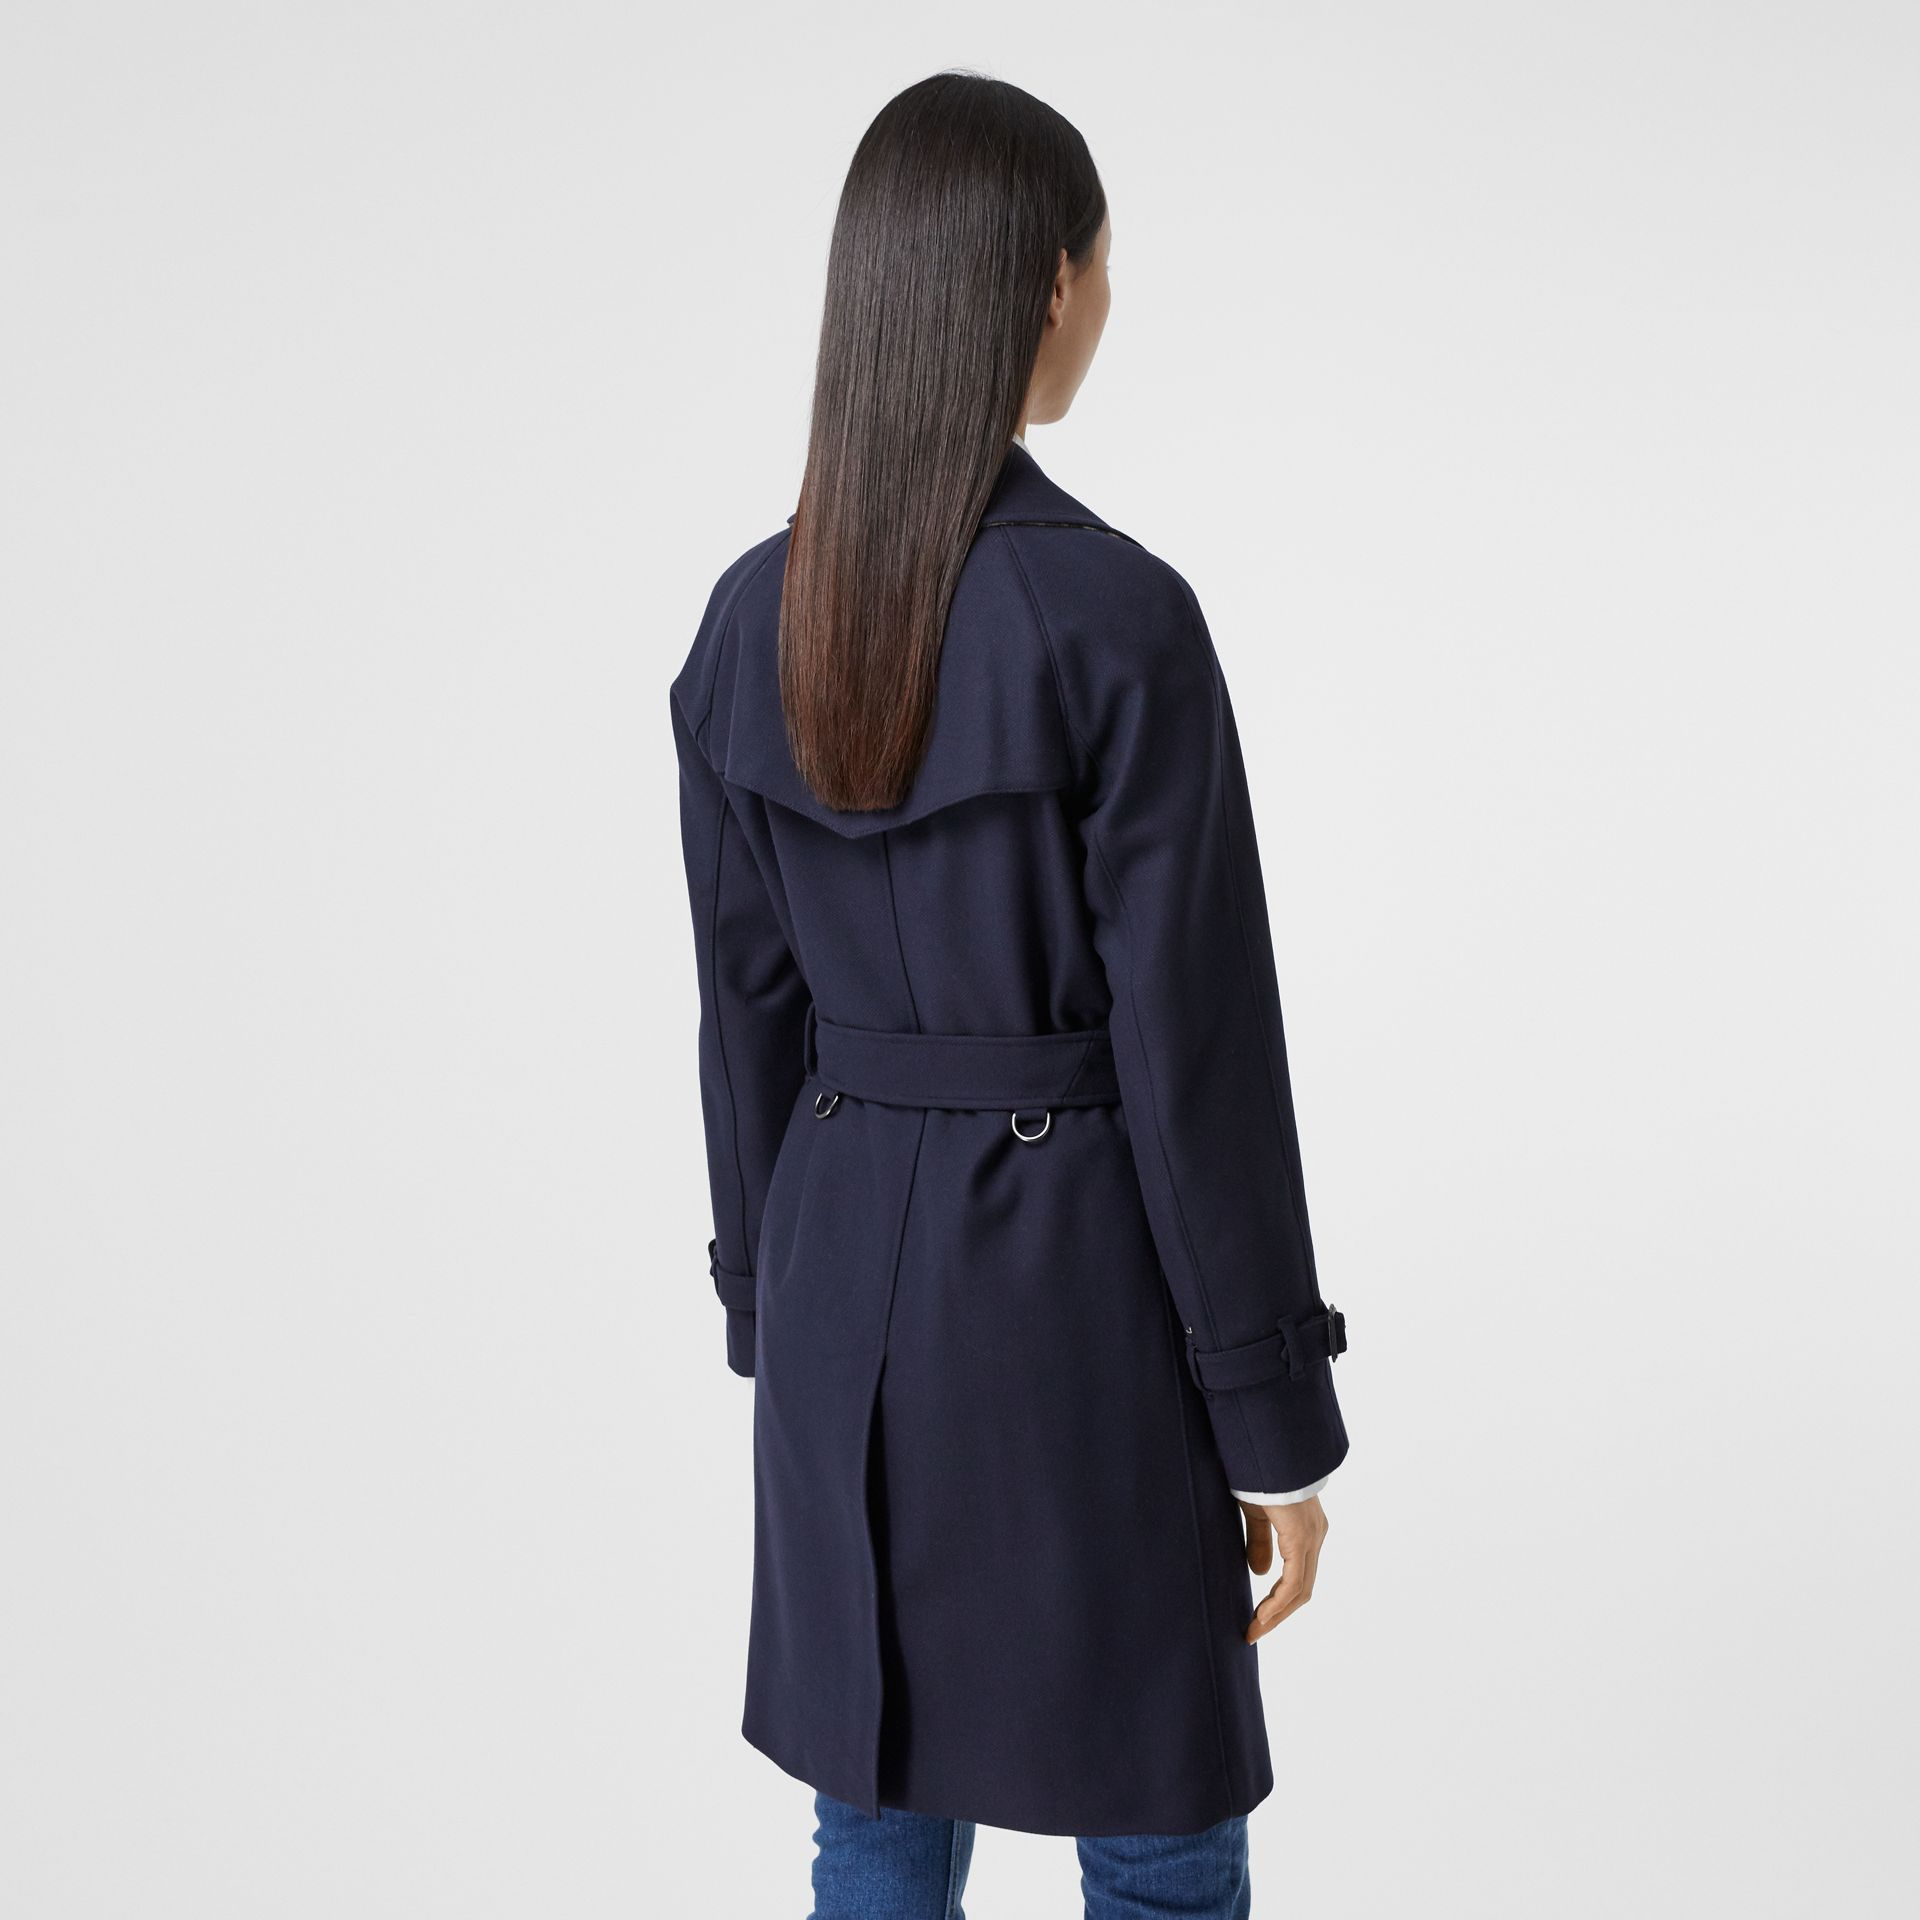 Herringbone Wool Cashmere Blend Trench Coat in Navy - Women | Burberry - gallery image 2